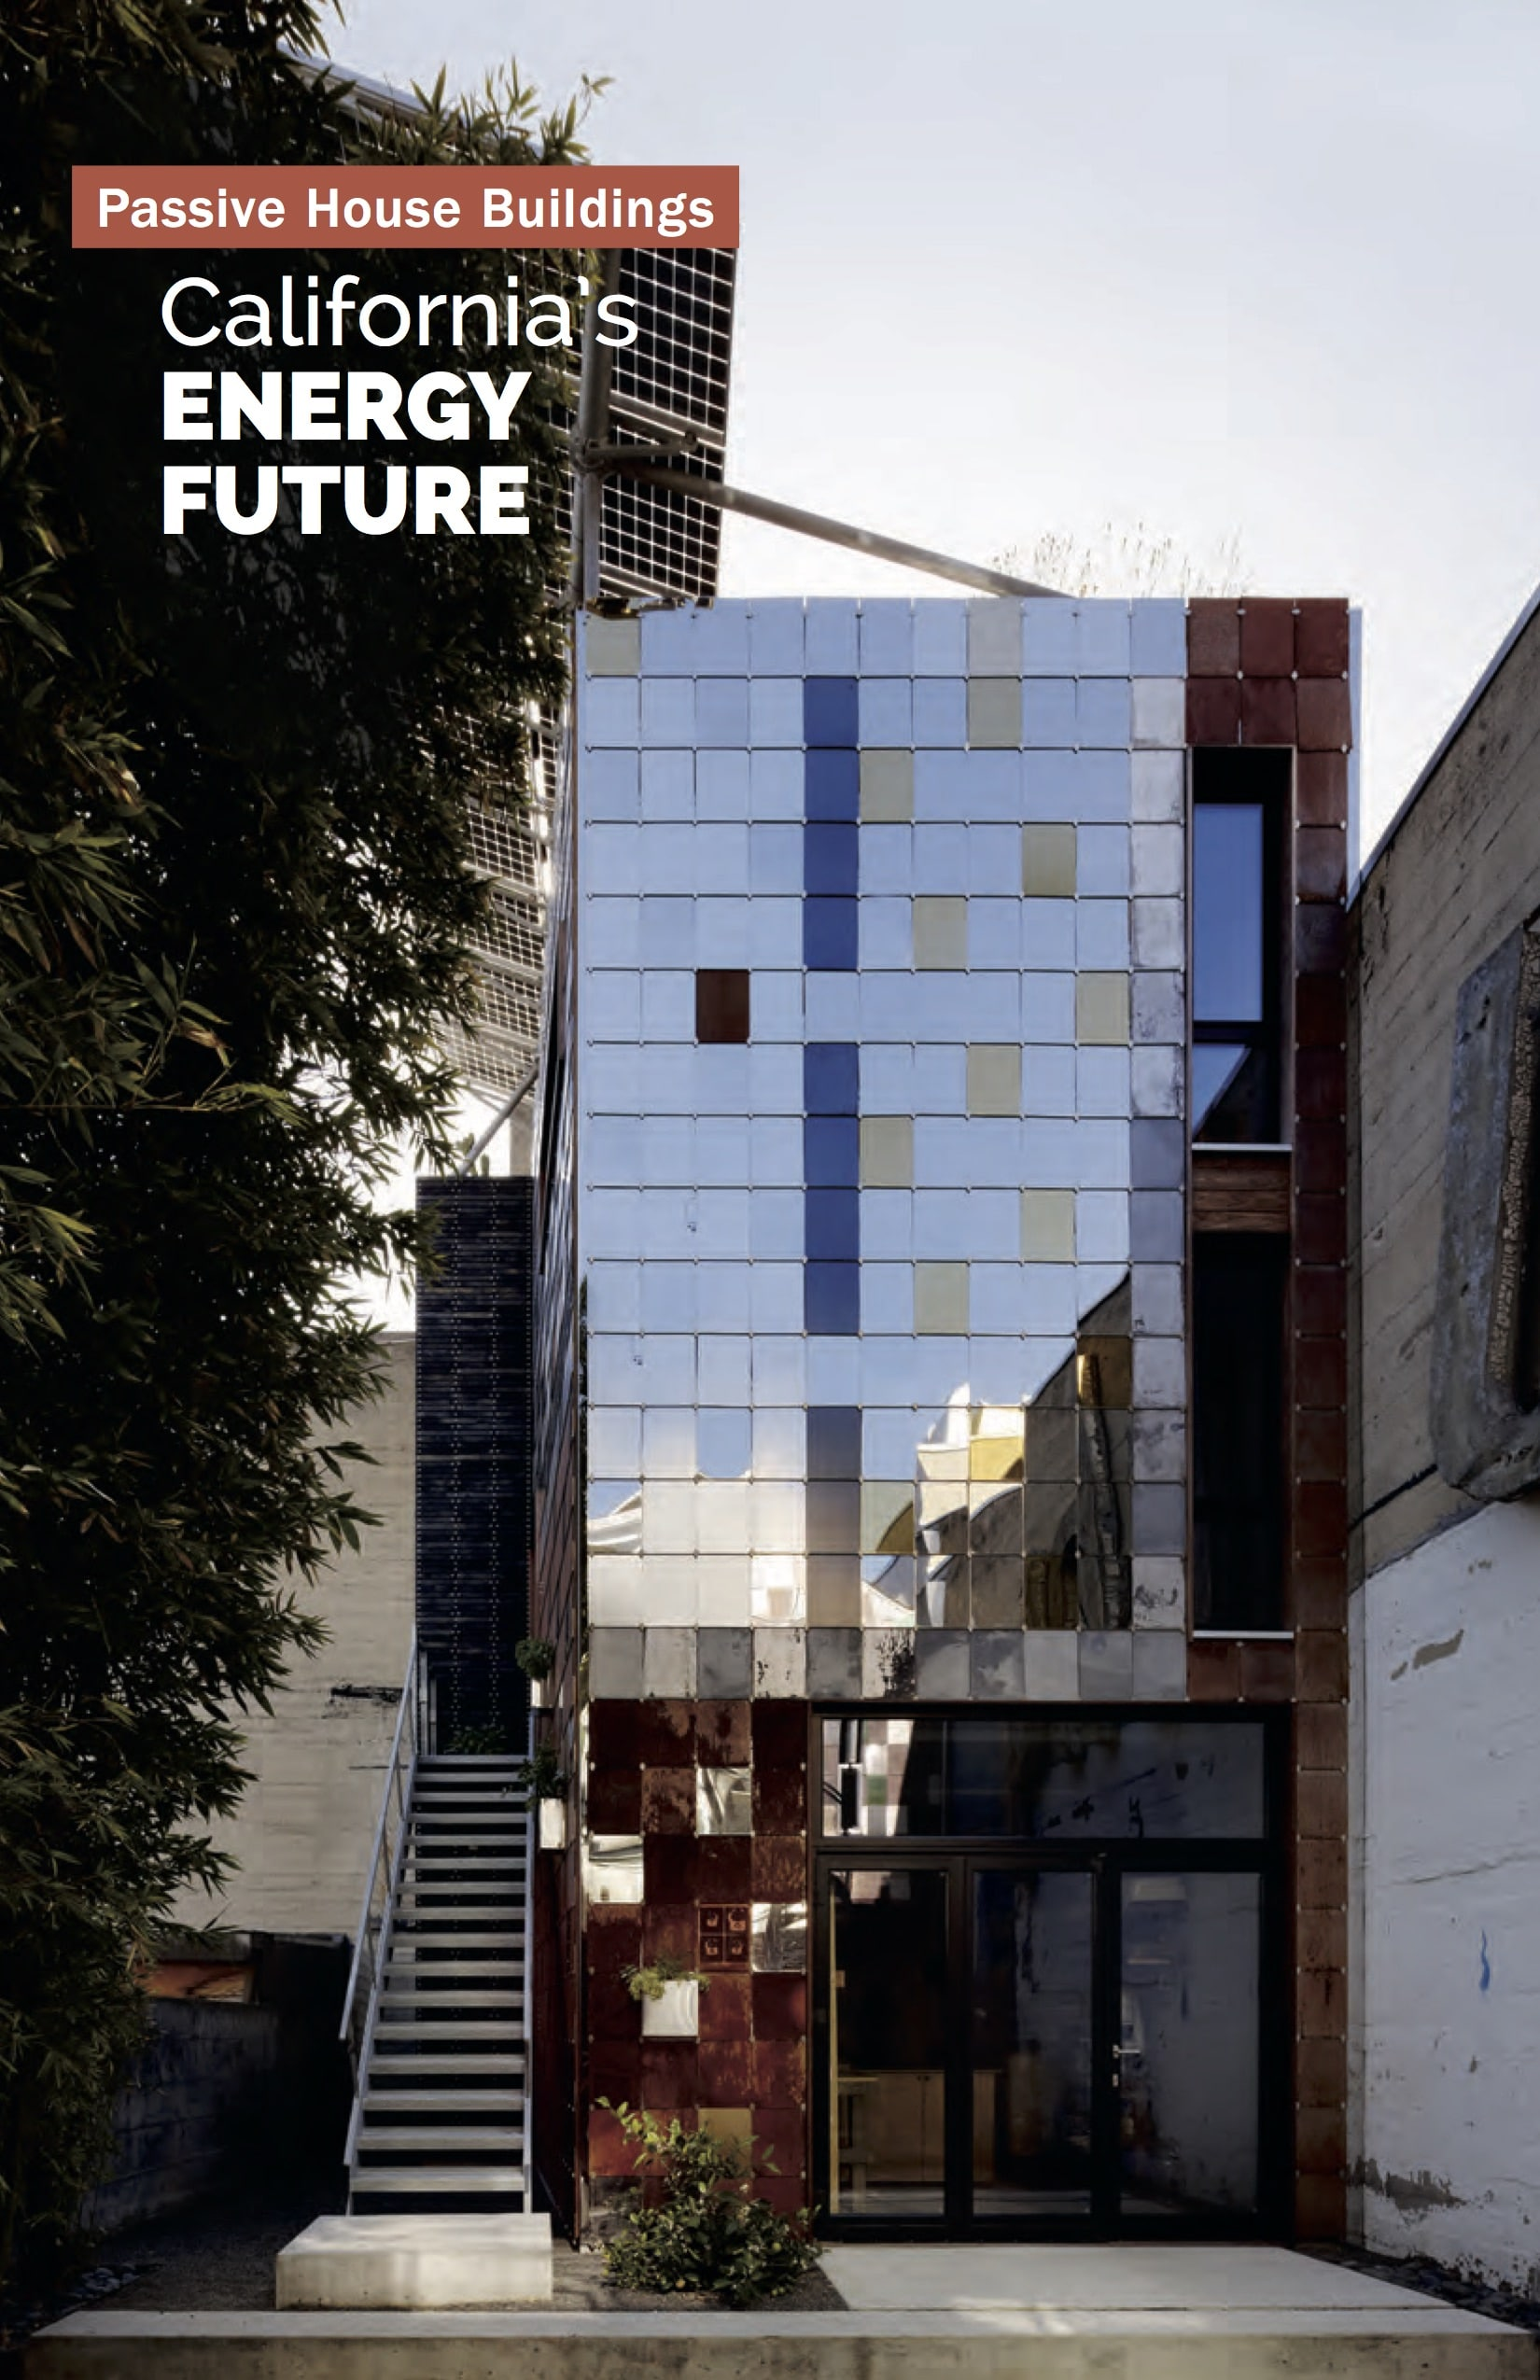 Passive House Buildings California's EnergyFuture Ebook